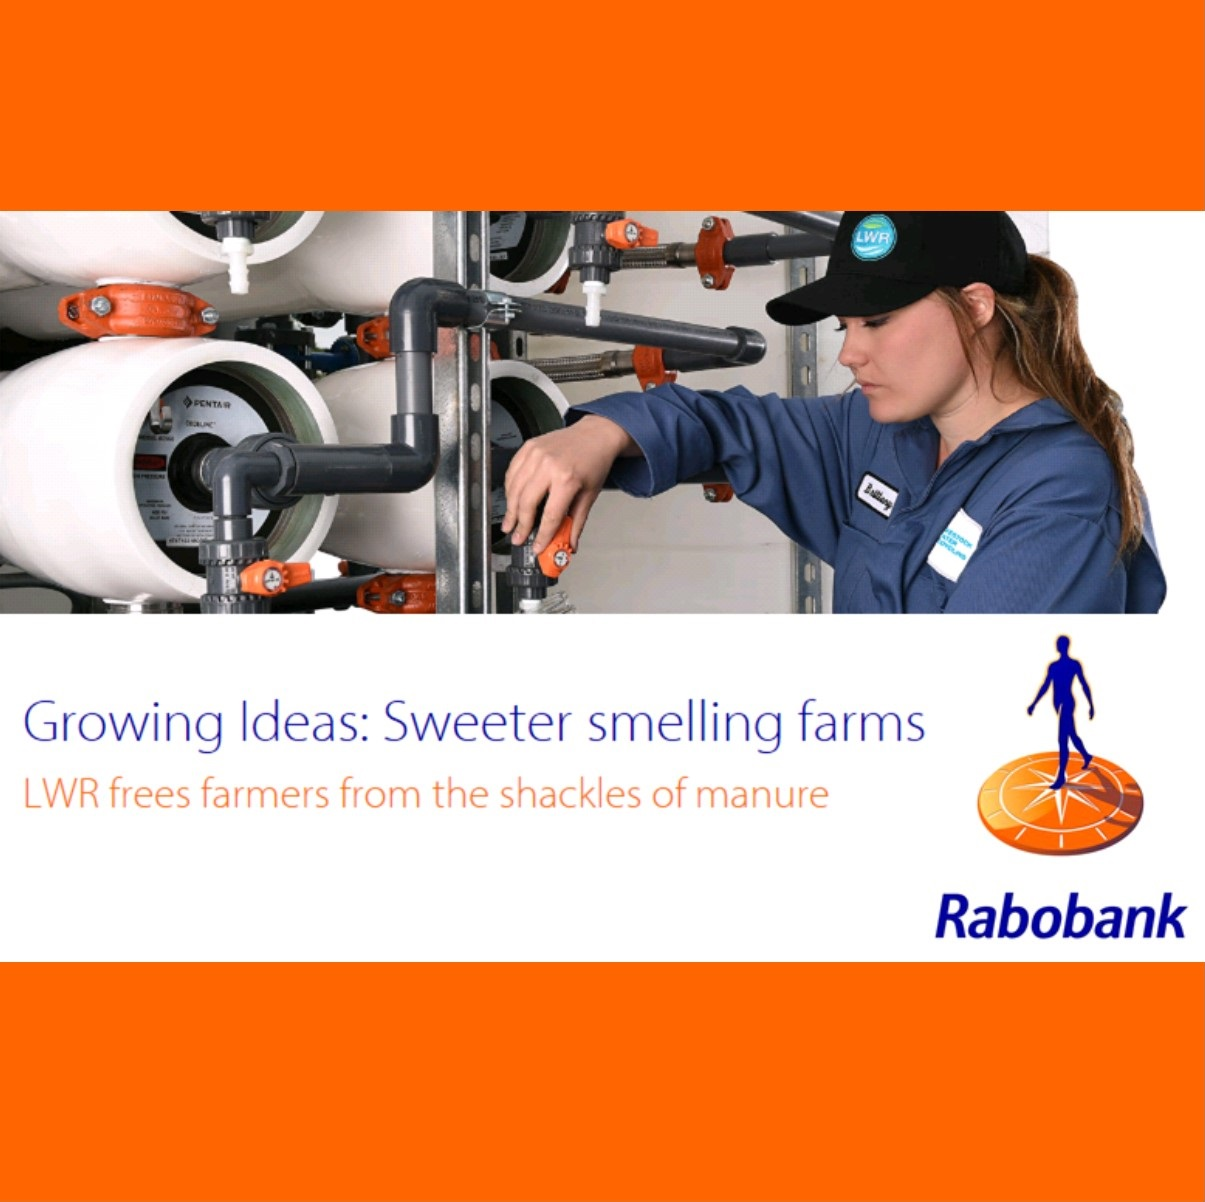 Sweeter Smelling Farms